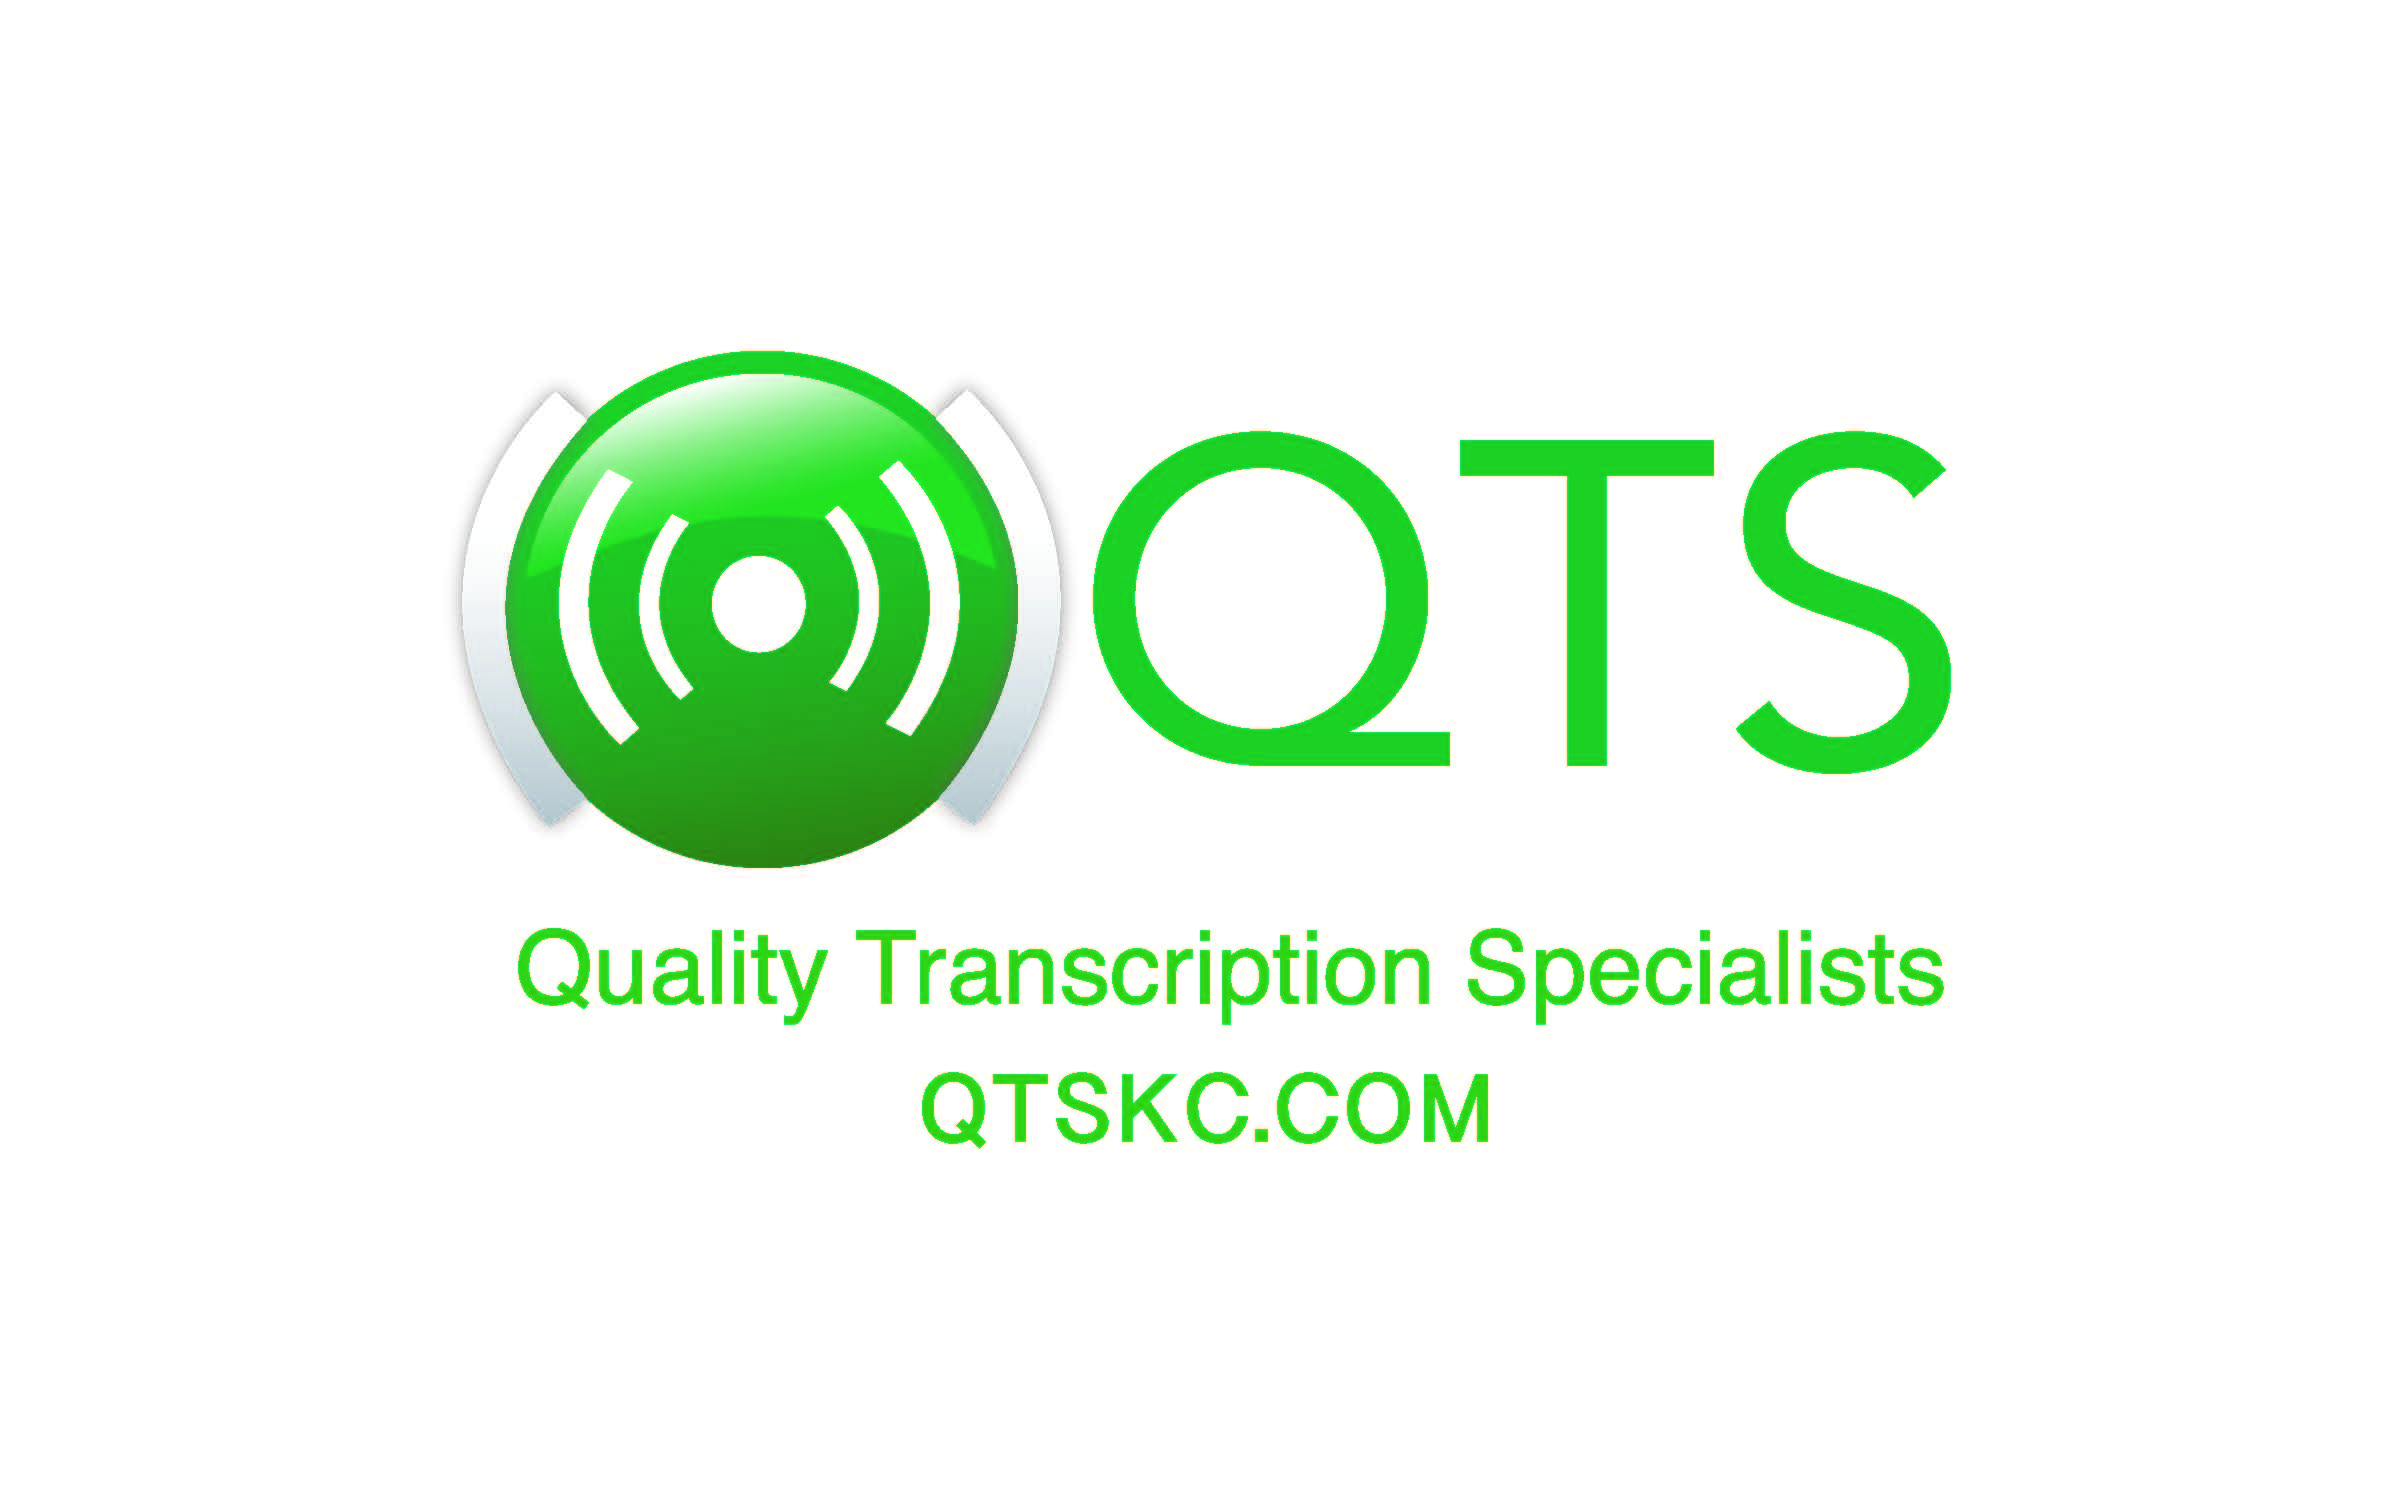 Quality Transcription Specialists logo and link